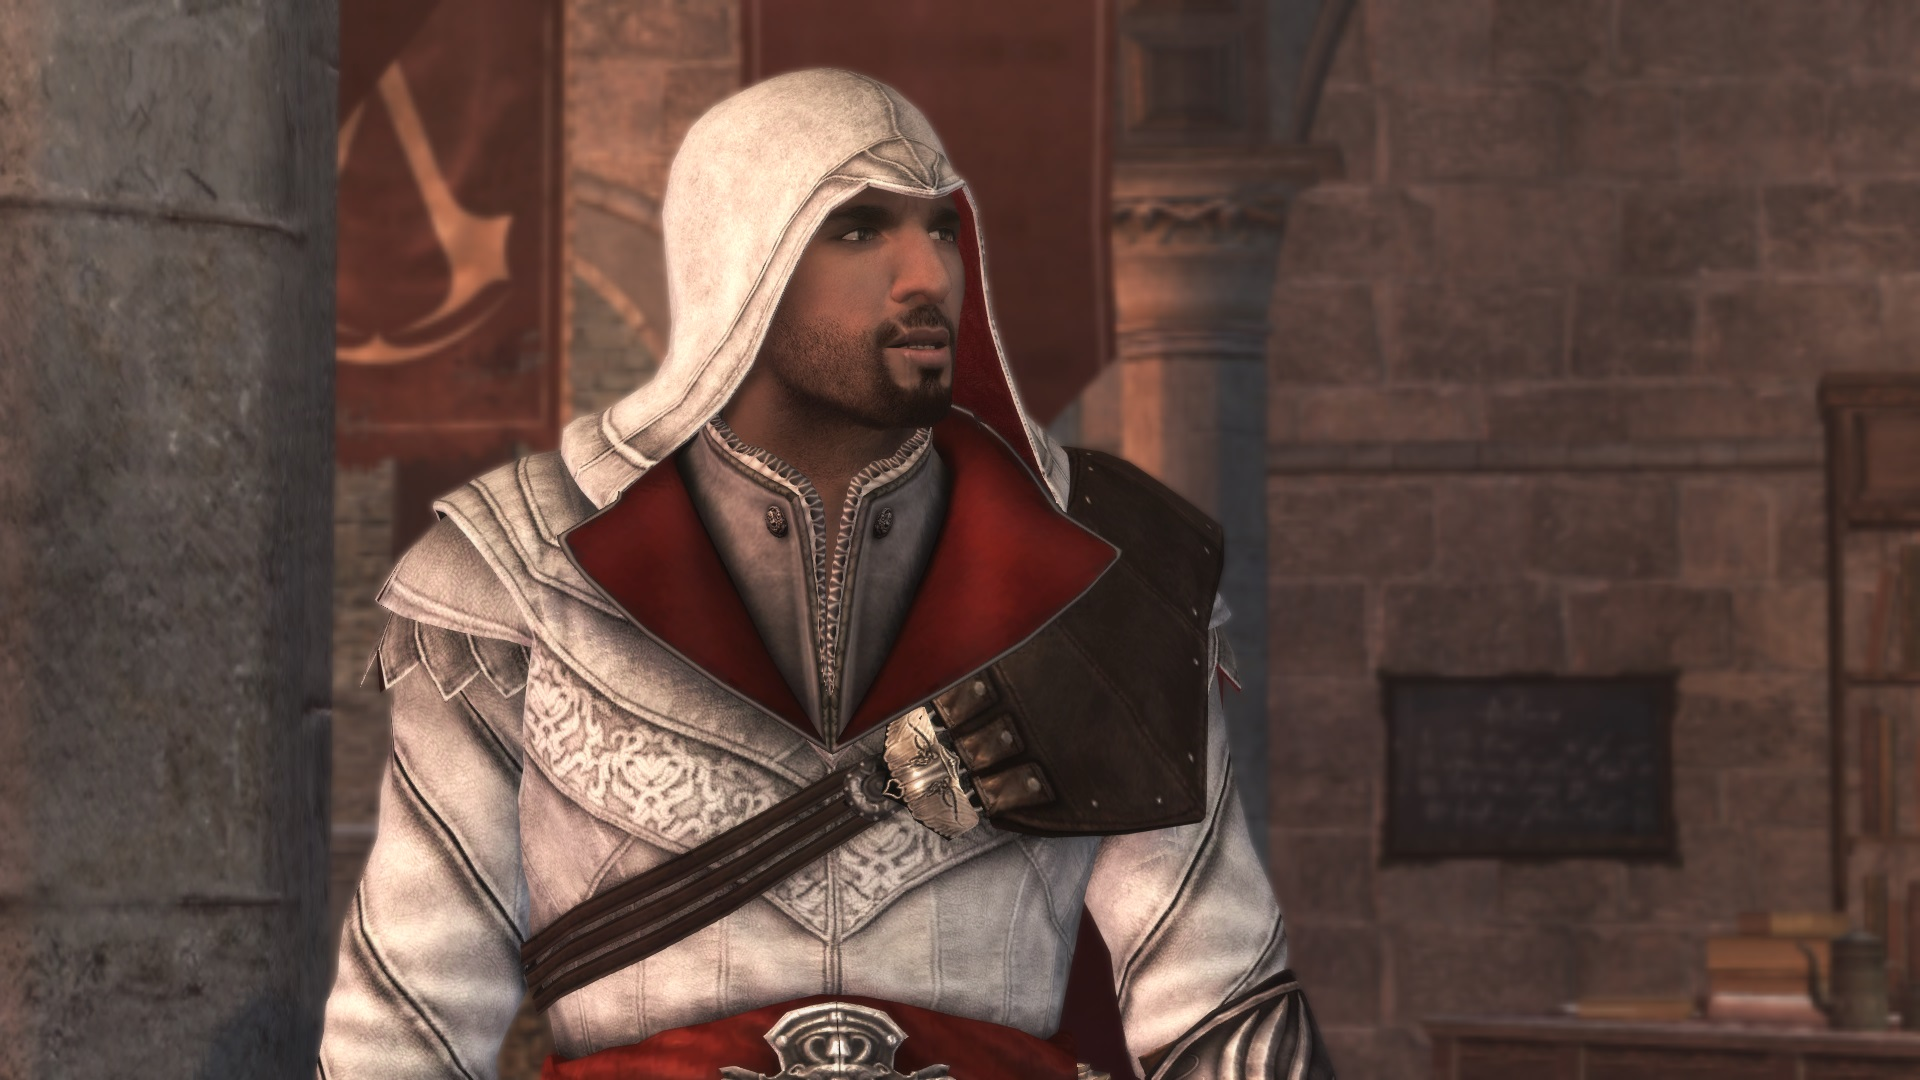 The Ezio Collection represents some of the best and the worst for Assassin's Creed